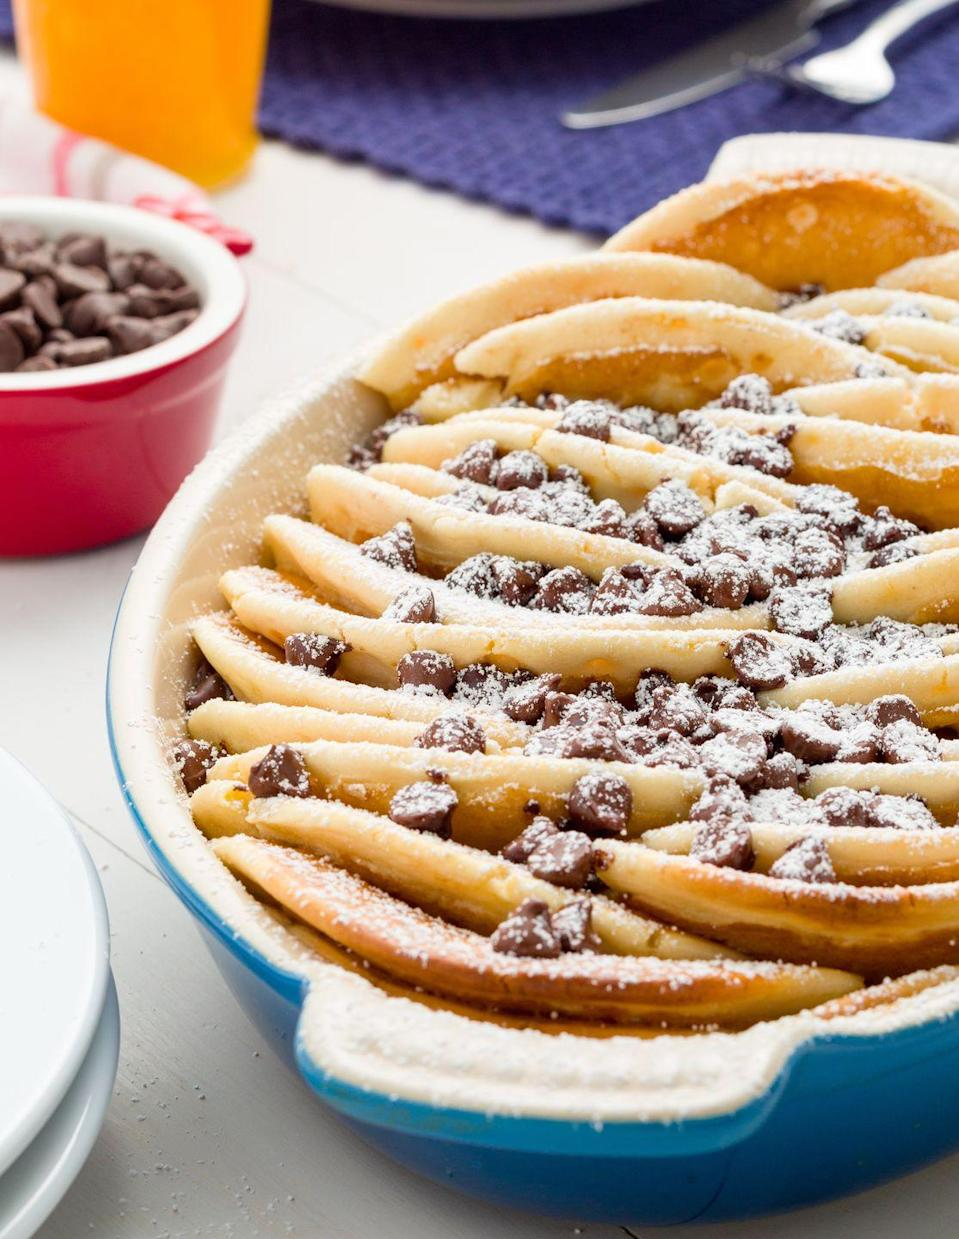 """<p>If chocolate chips weren't enough, we showered this casserole with powdered sugar.</p><p>Get the recipe from <a href=""""https://www.delish.com/cooking/recipe-ideas/recipes/a45036/chocolate-chip-pancake-casserole-recipe/"""" rel=""""nofollow noopener"""" target=""""_blank"""" data-ylk=""""slk:Delish"""" class=""""link rapid-noclick-resp"""">Delish</a>.</p>"""